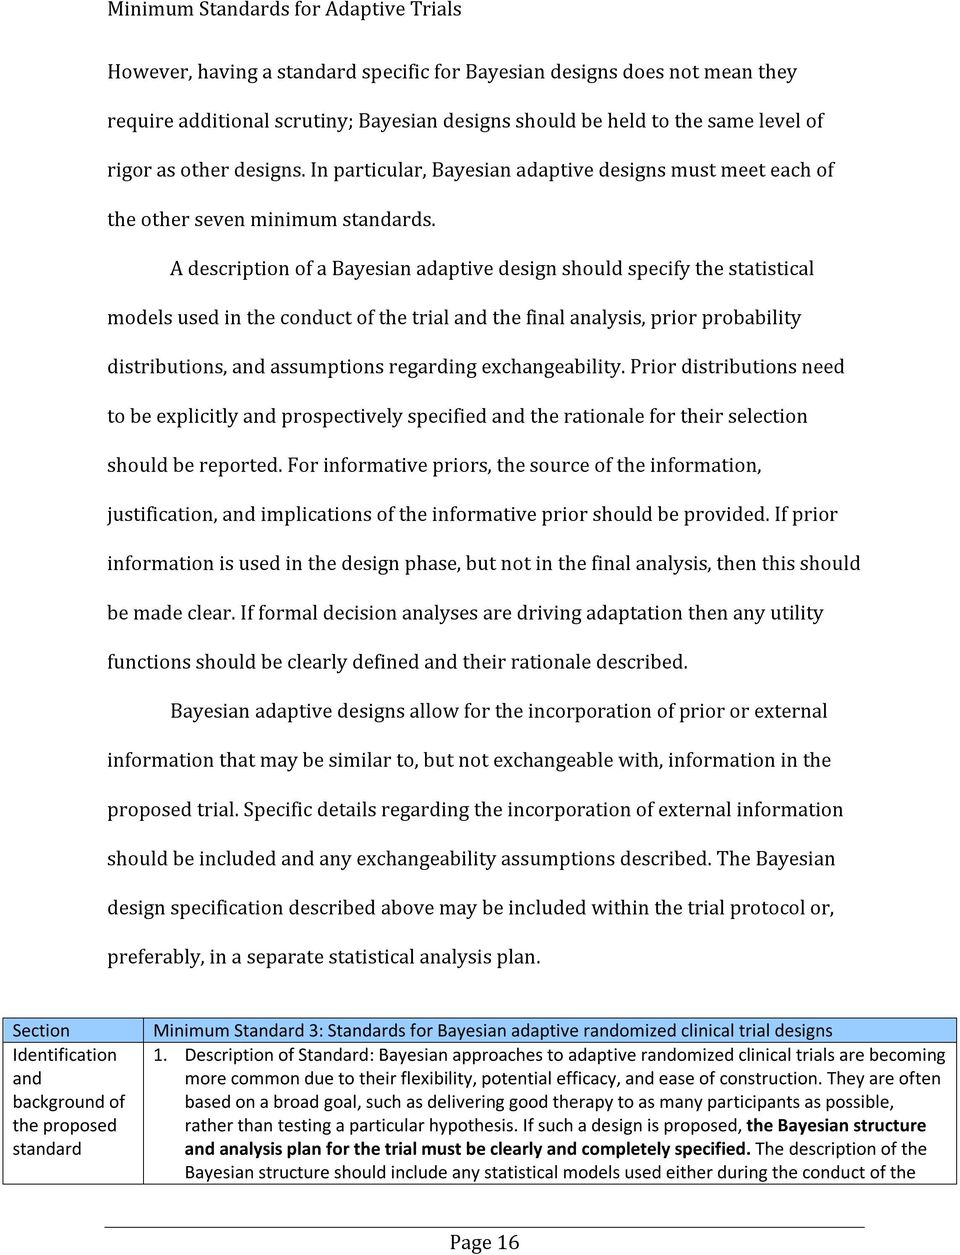 A description of a Bayesian adaptive design should specify the statistical models used in the conduct of the trial and the final analysis, prior probability distributions, and assumptions regarding